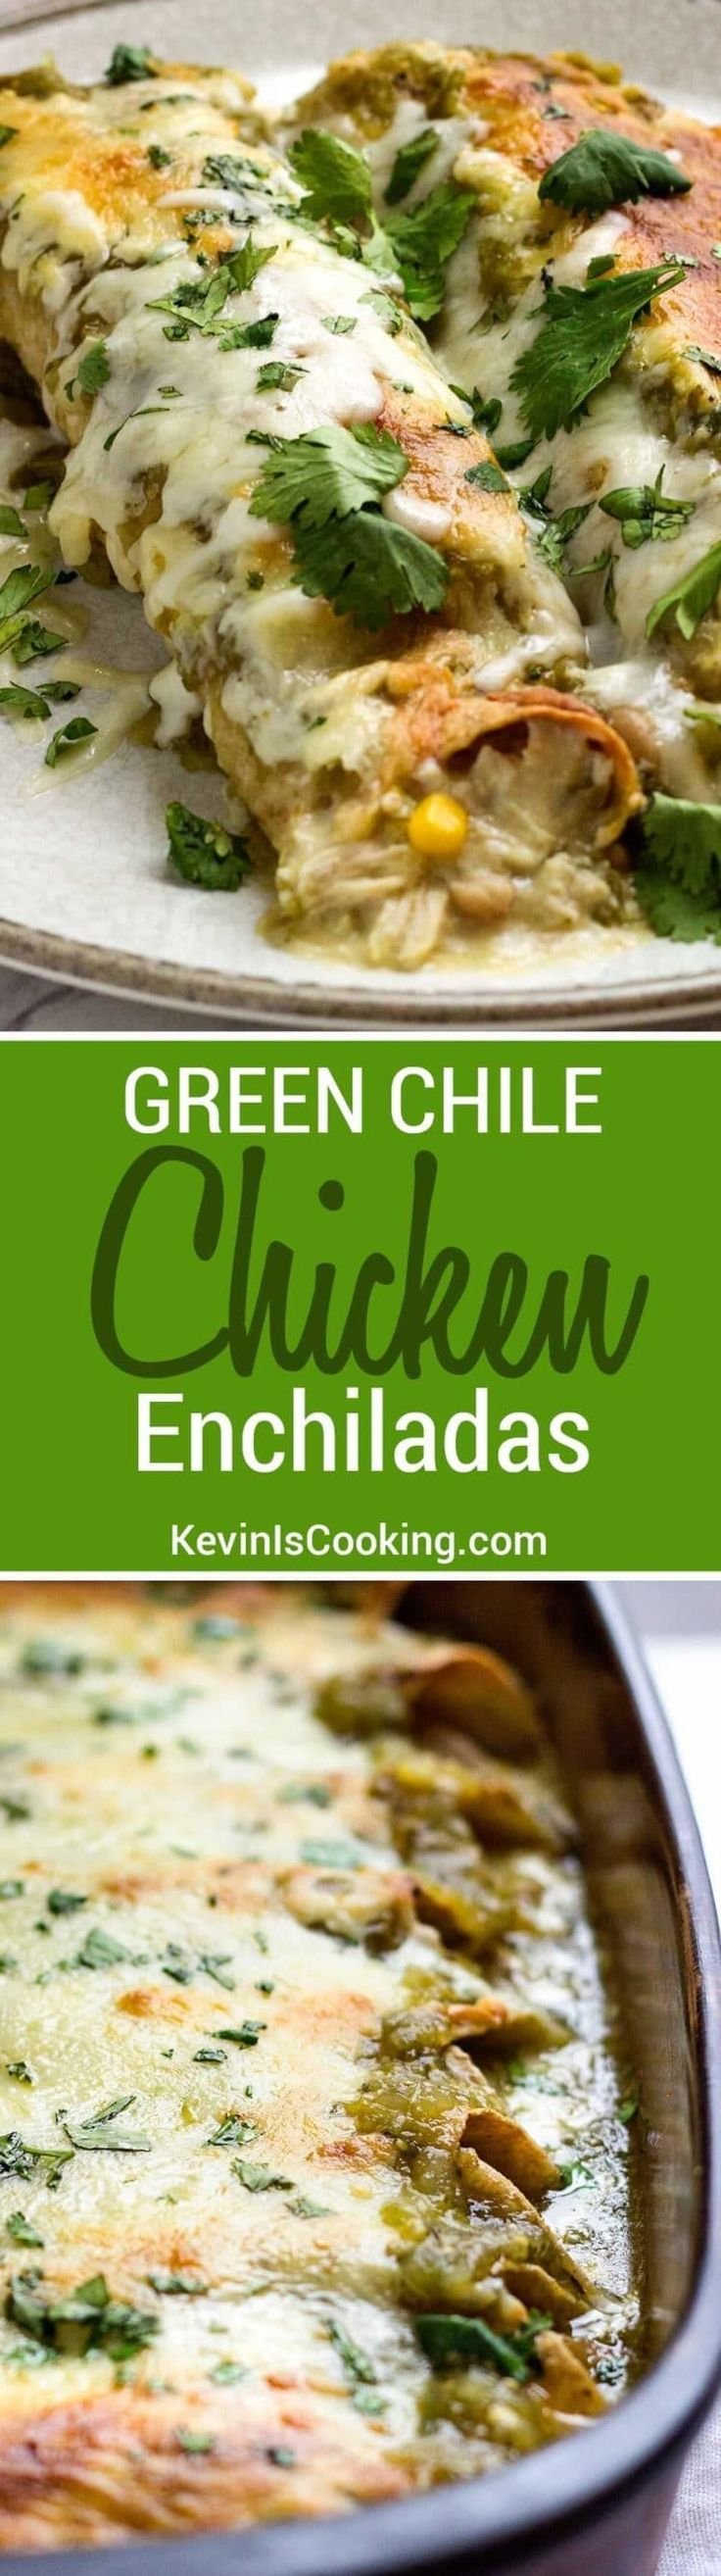 These Green Chile Chicken Enchiladas use shredded chicken, white beans, corn and plenty of Pepper Jack cheese then are smothered in a green salsa verde. via @keviniscooking